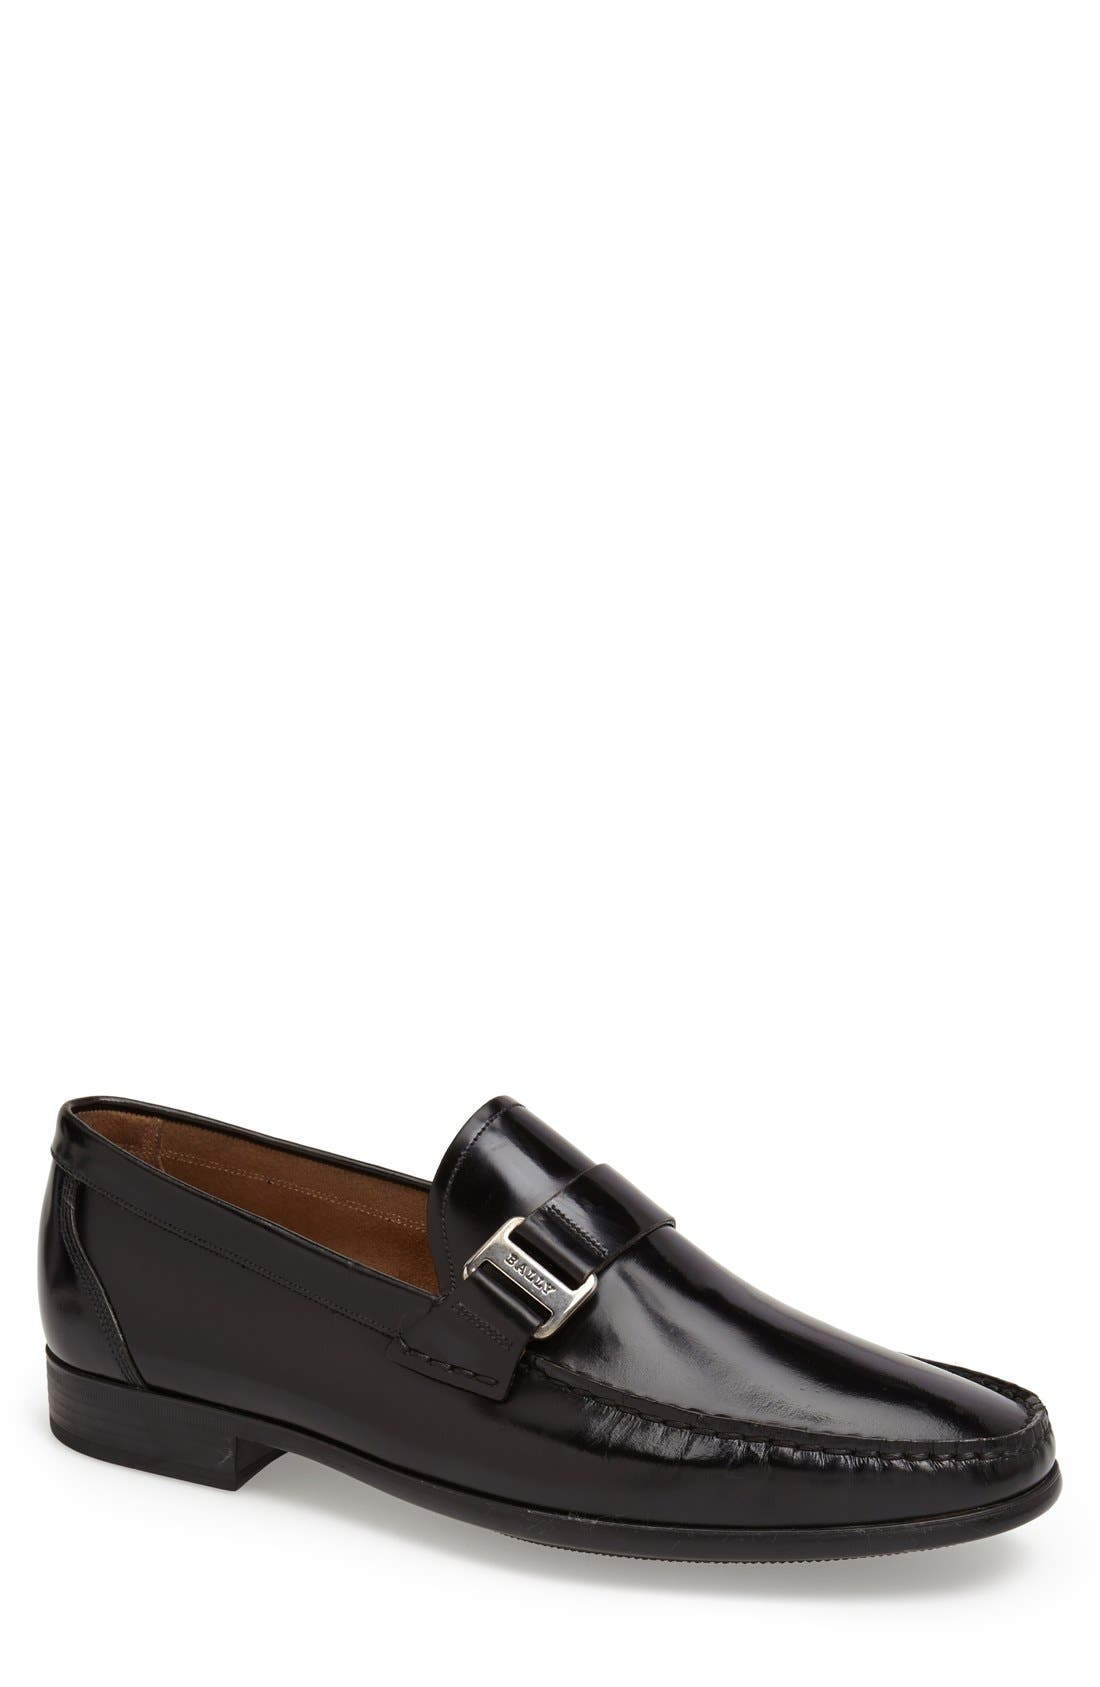 Alternate Image 1 Selected - Bally 'Colbar' Bit Loafer (Men)